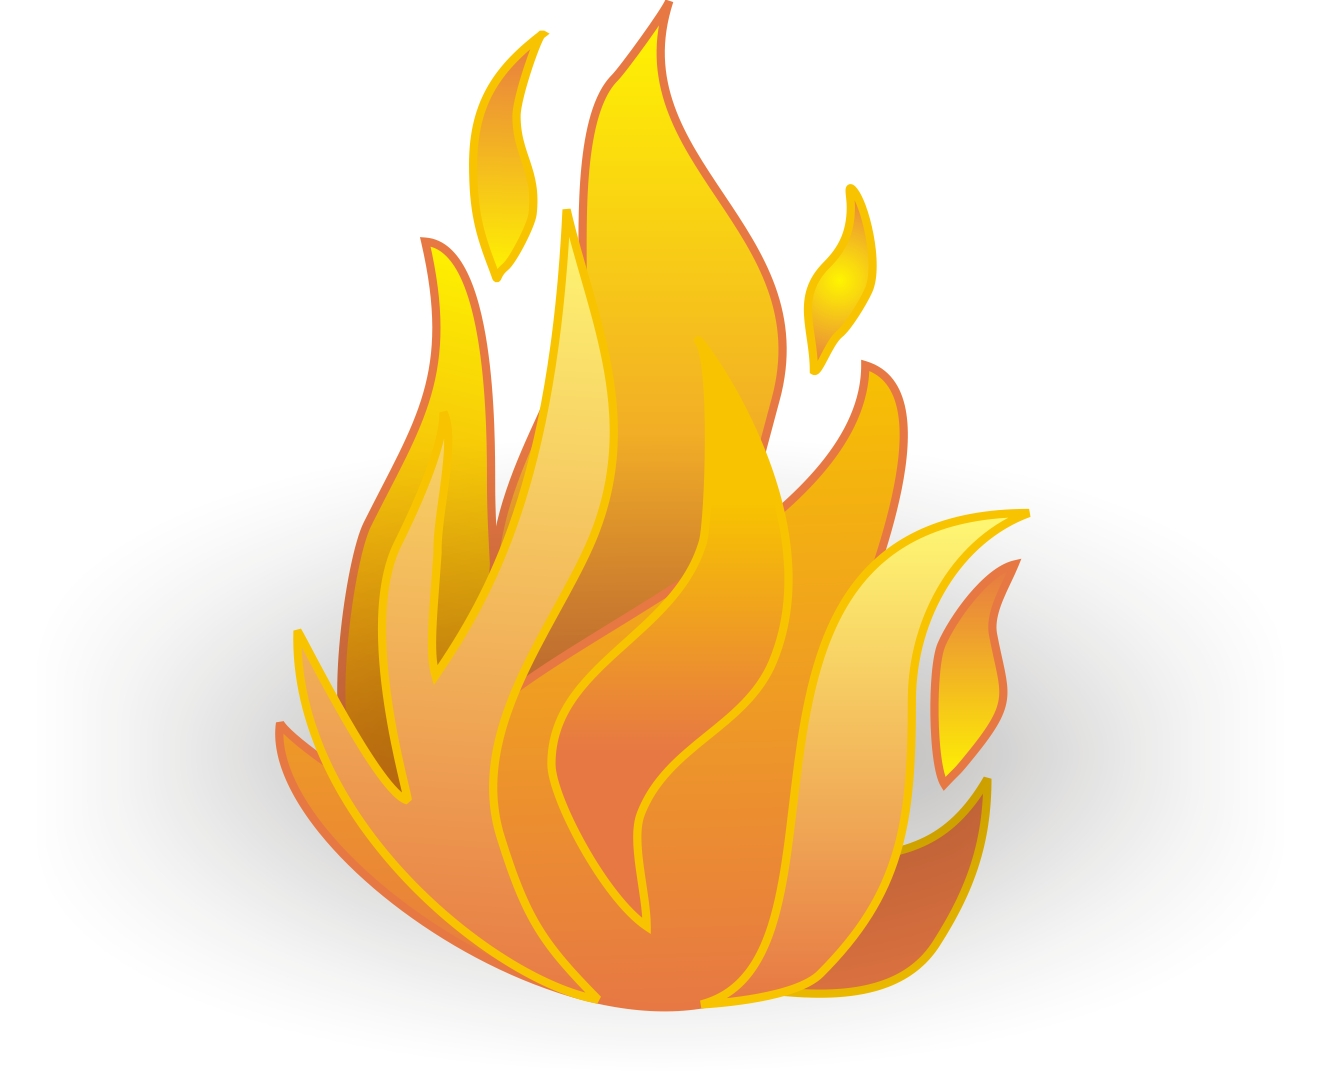 Fire Flames Png - ClipArt Best - Cliparts.co